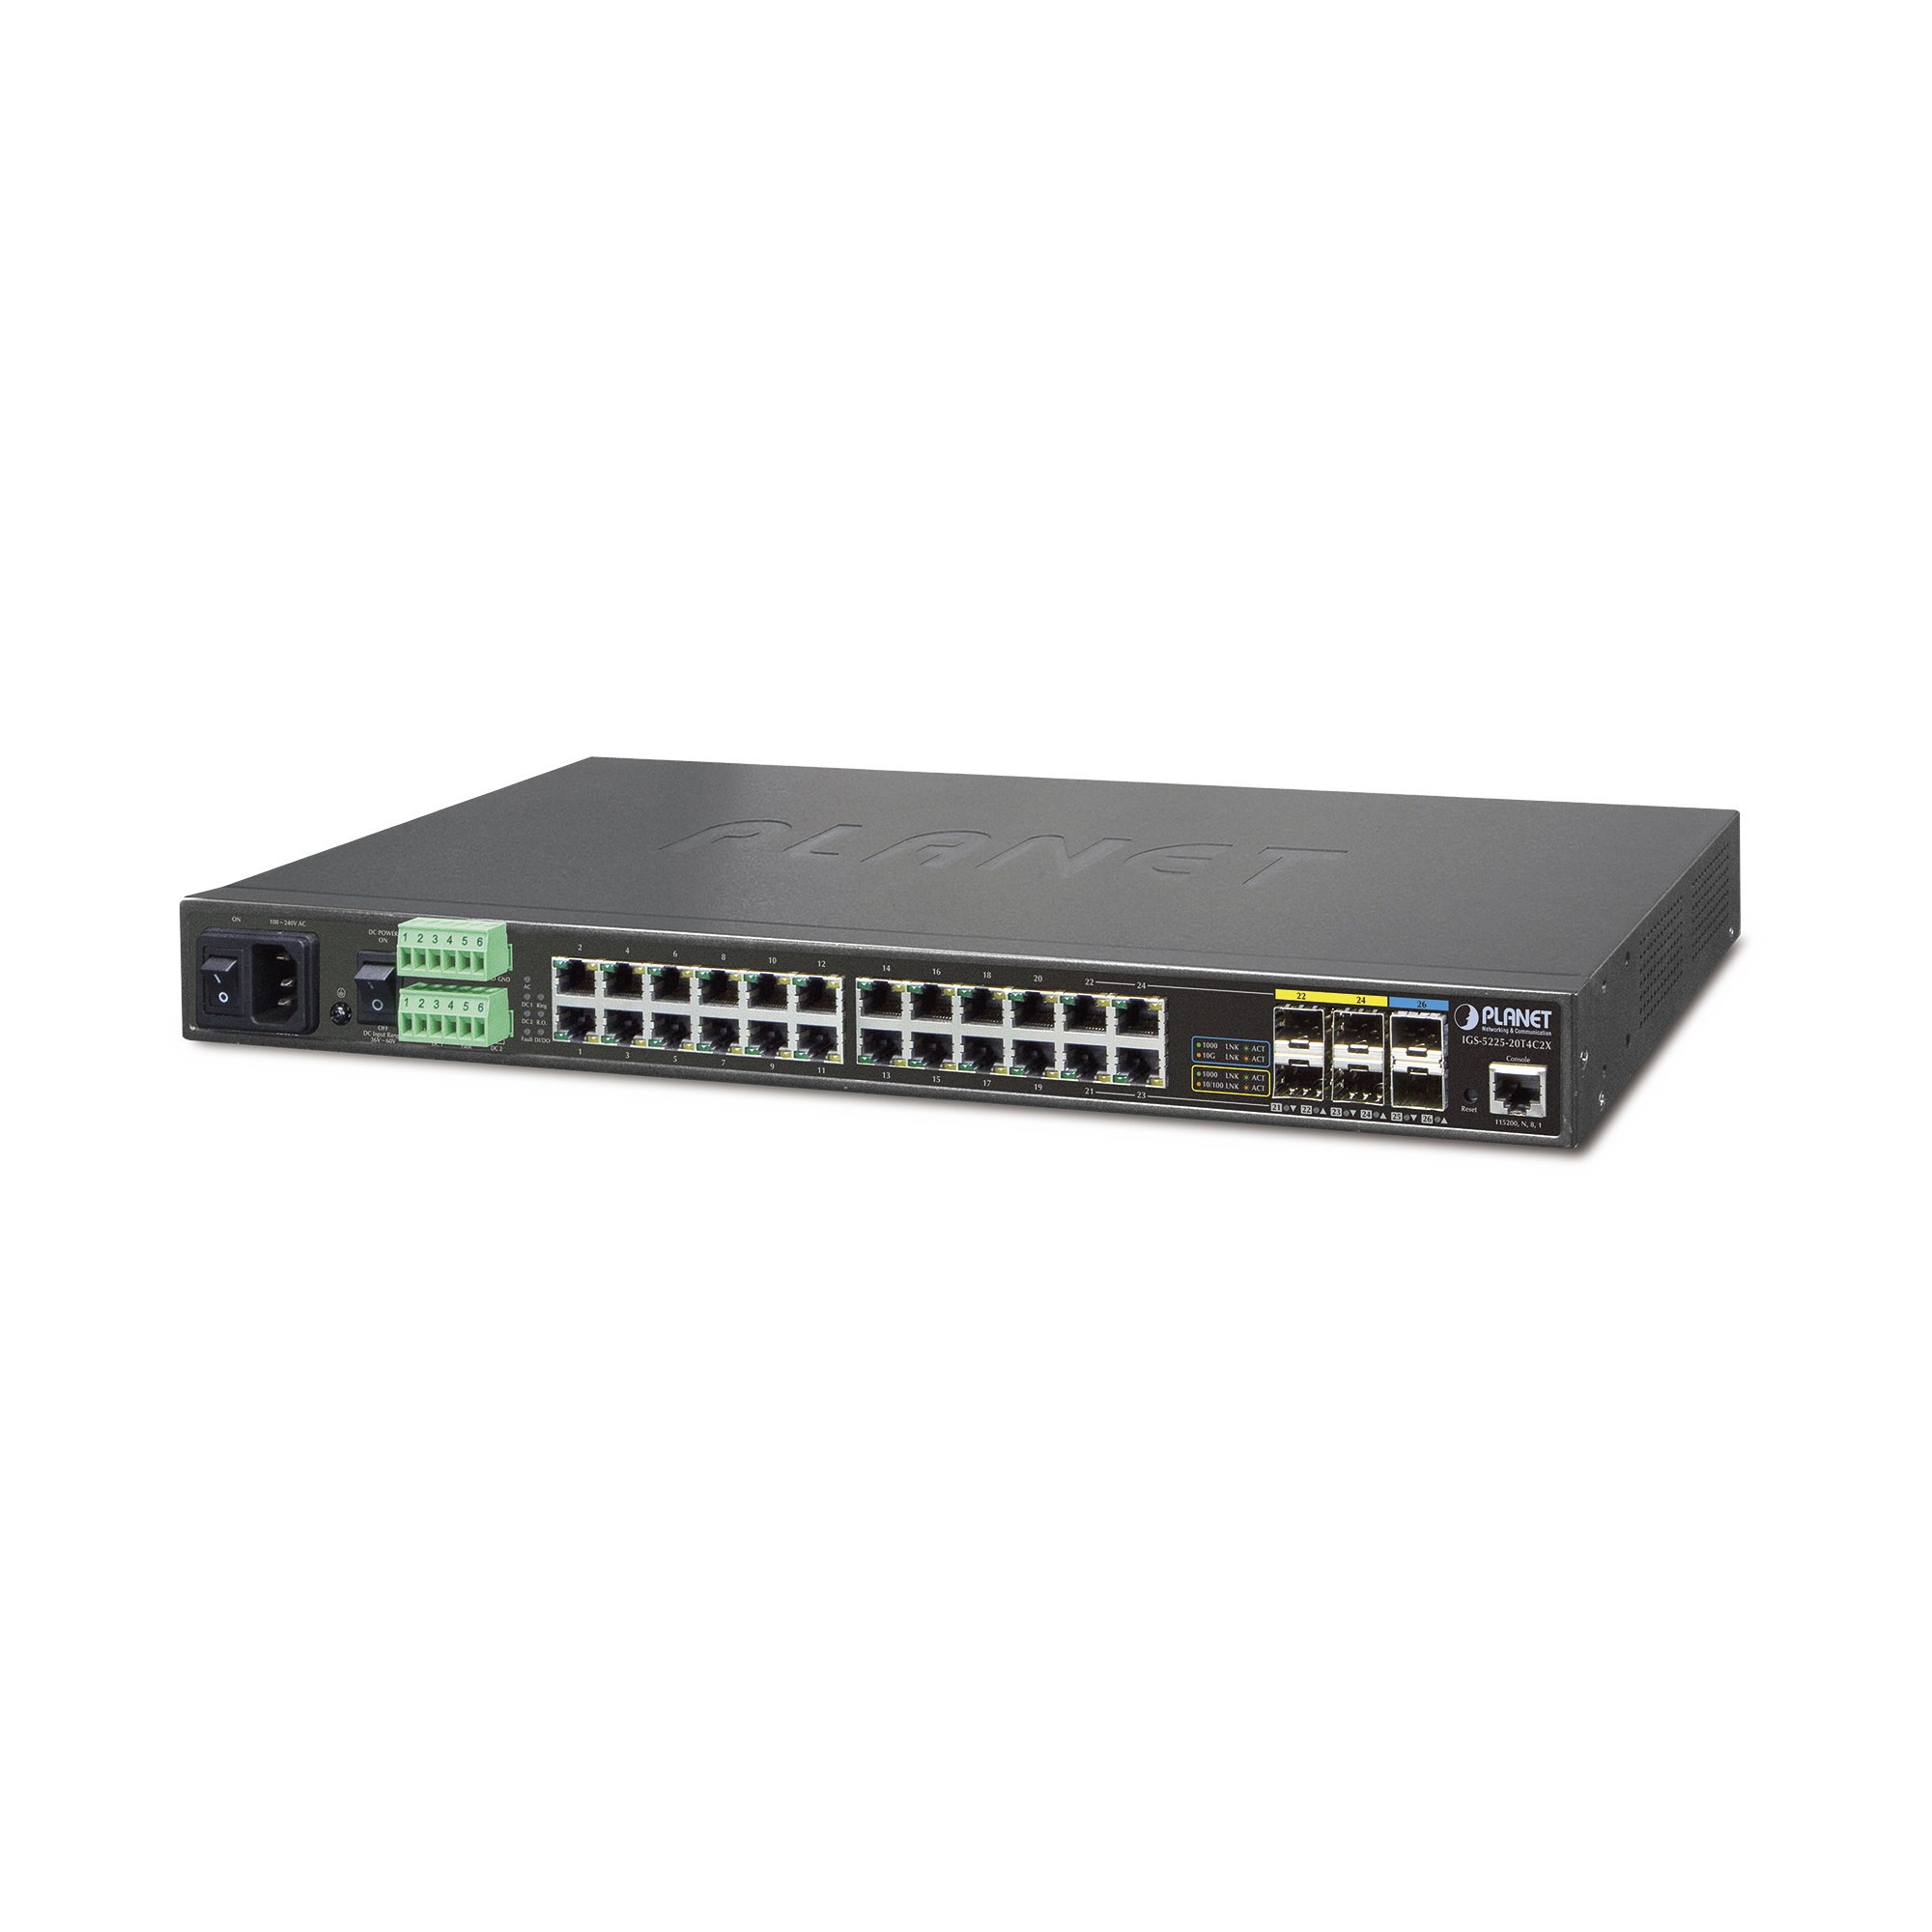 Switch Industrial Administrable L2+ 24 Puertos ,4 Combo SFP, 2 SFP+ 10G (-40 a 75ºC)